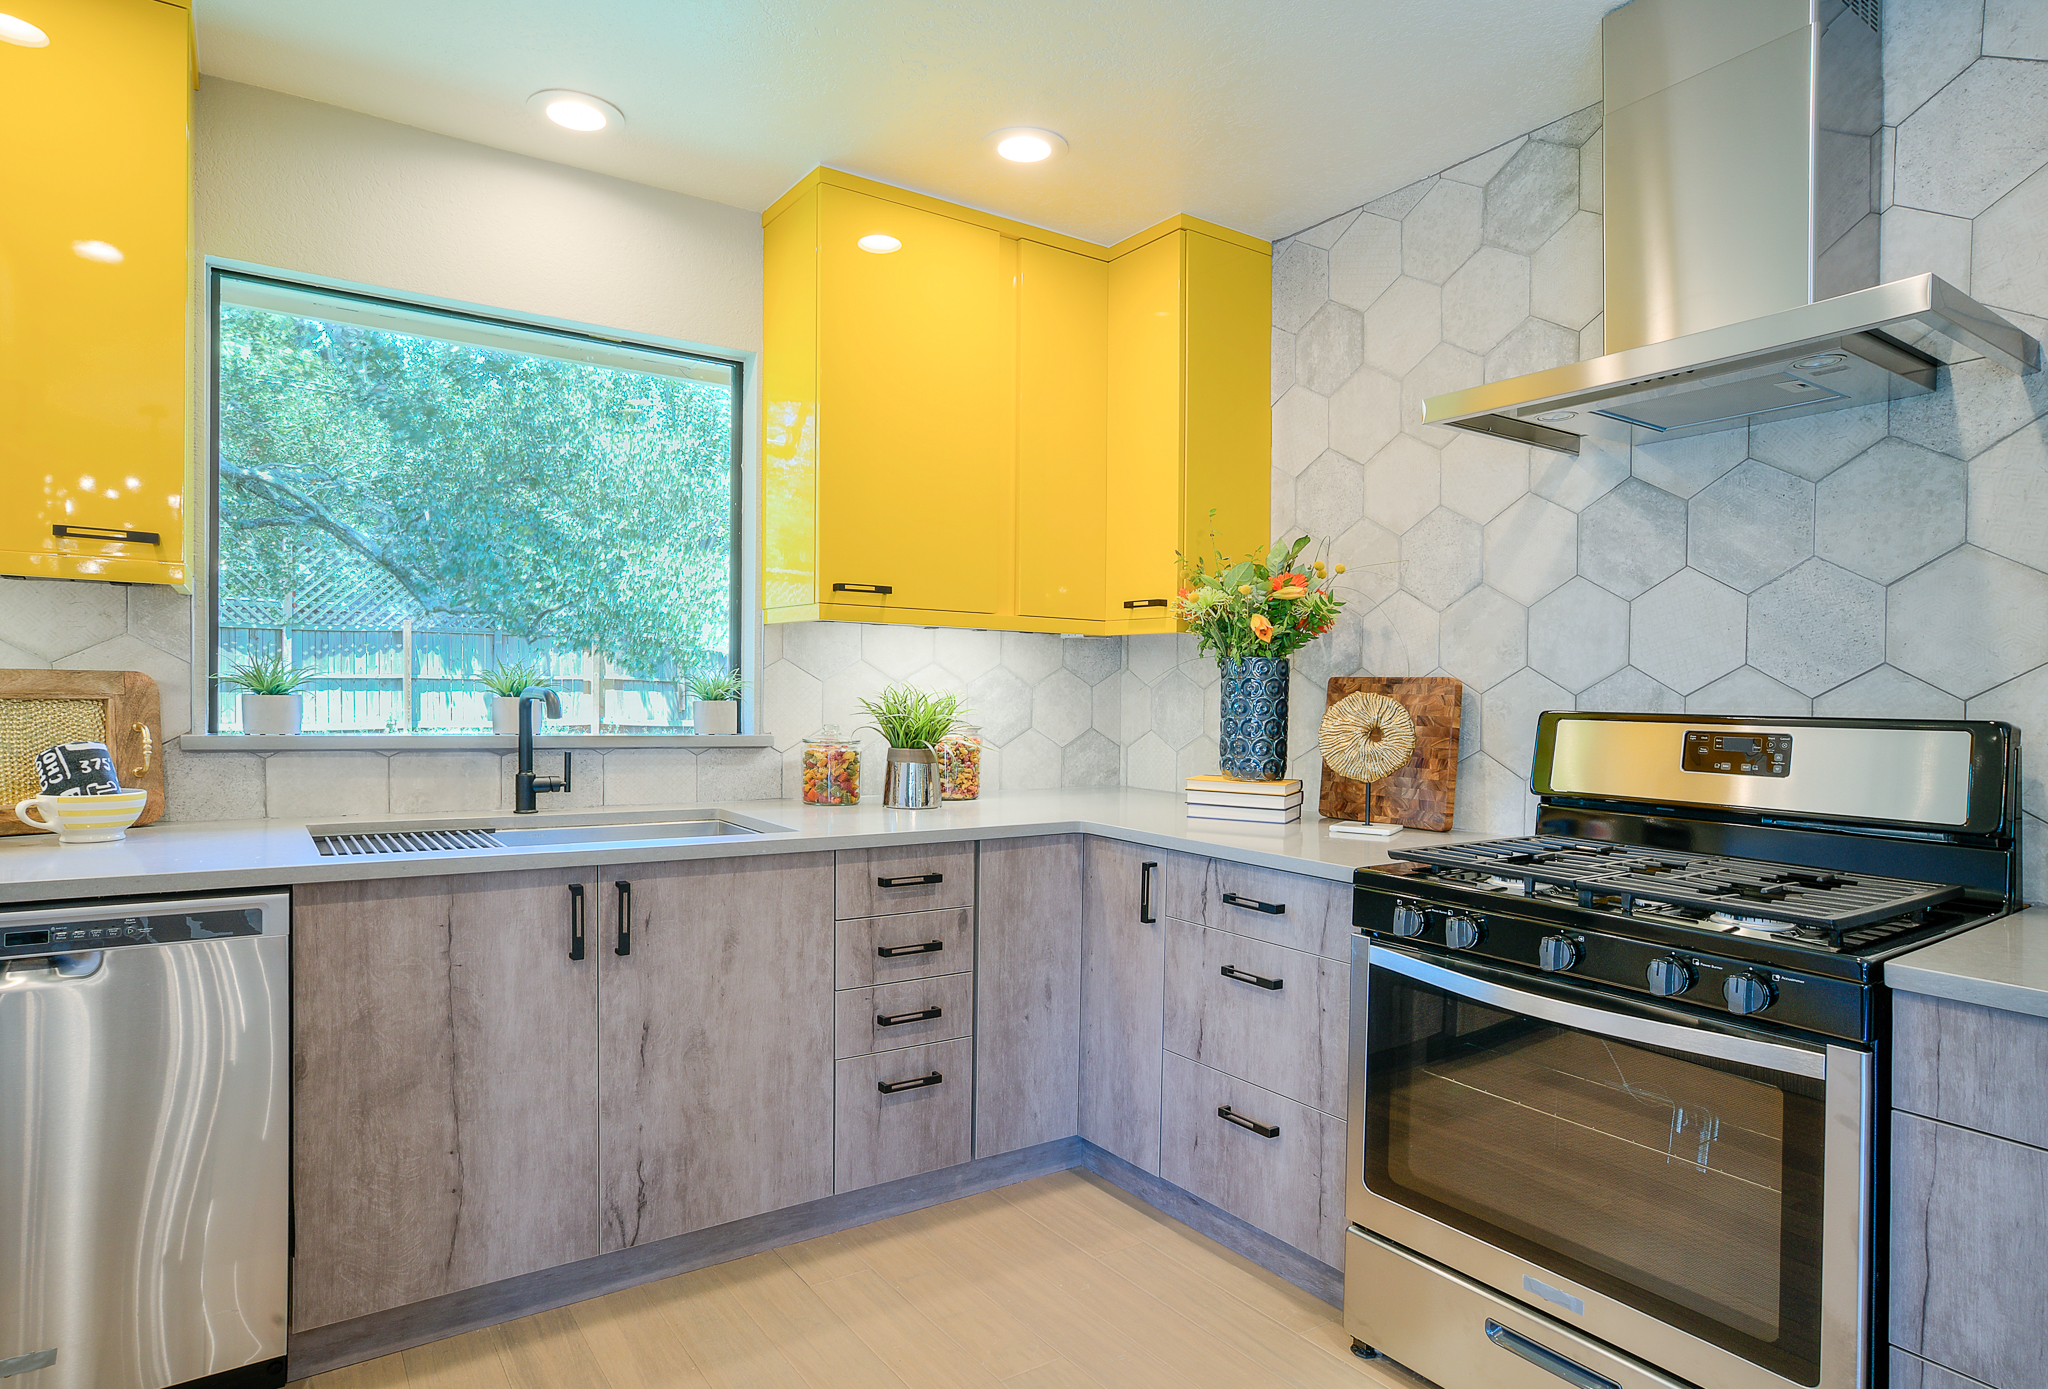 Michelle Thomas Design kitchen renovation for HGTV in Austin, Texas